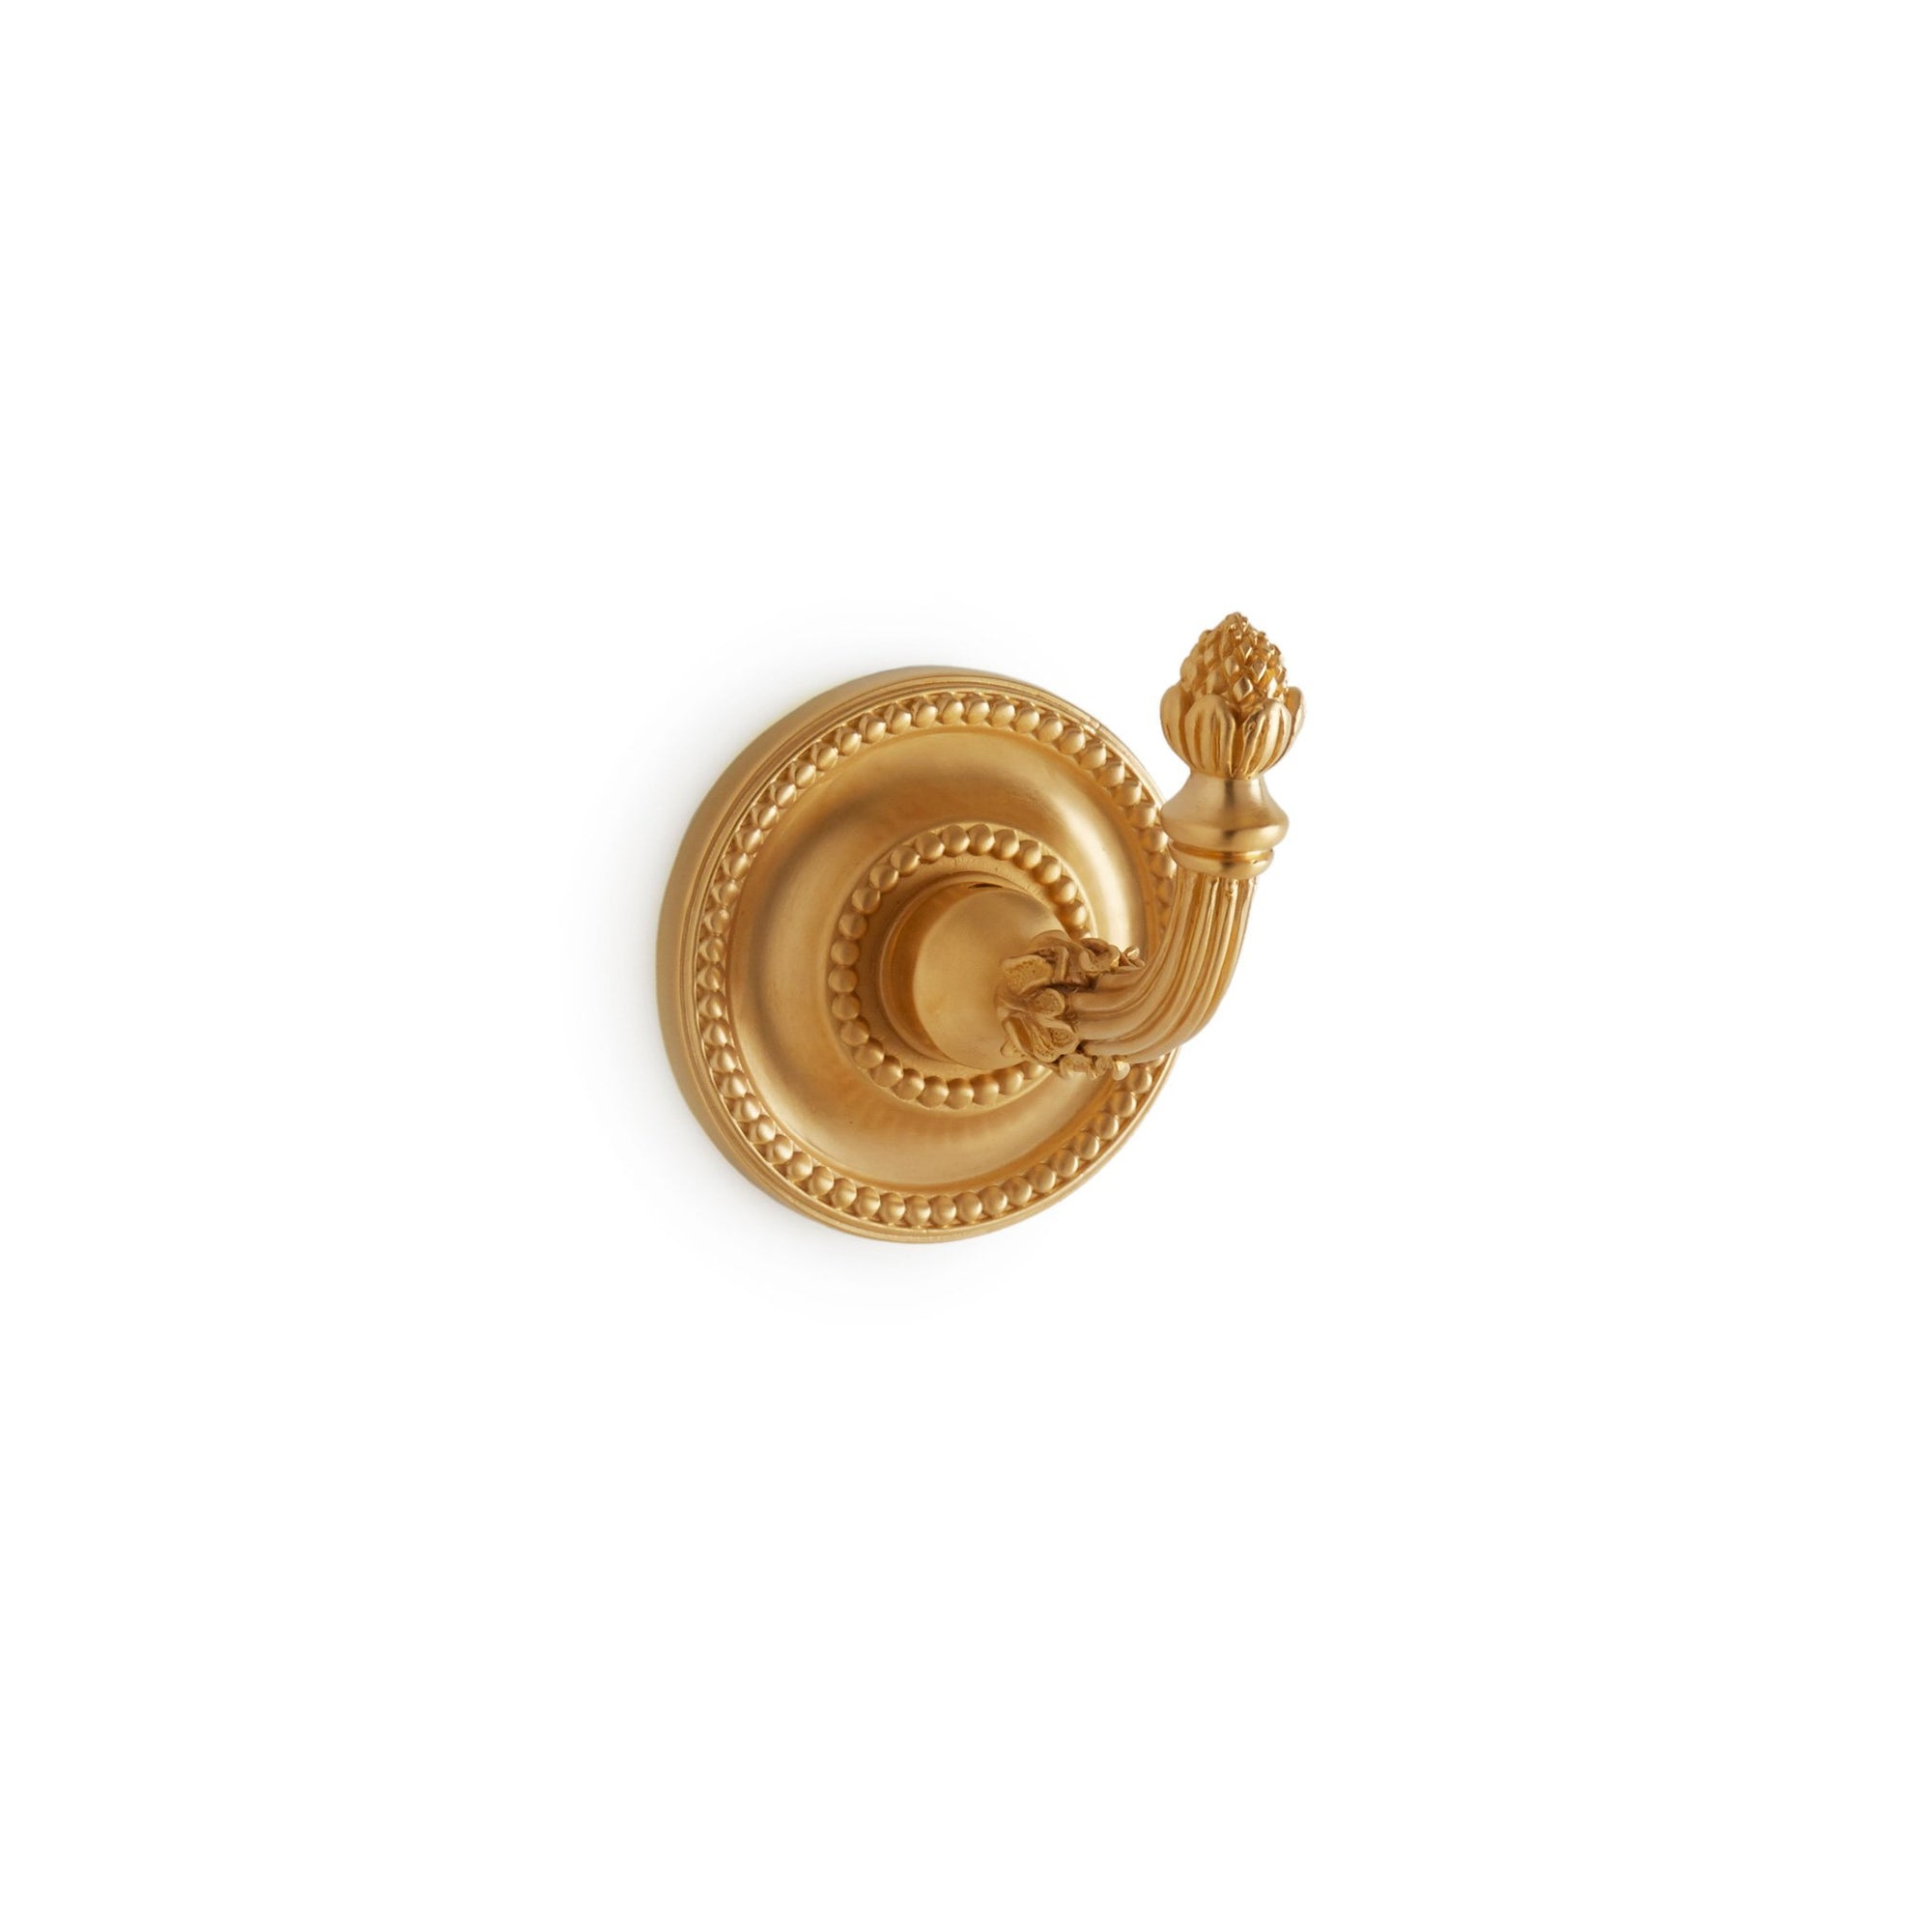 3416-GP Sherle Wagner International Classical Hook in Gold Plate metal finish